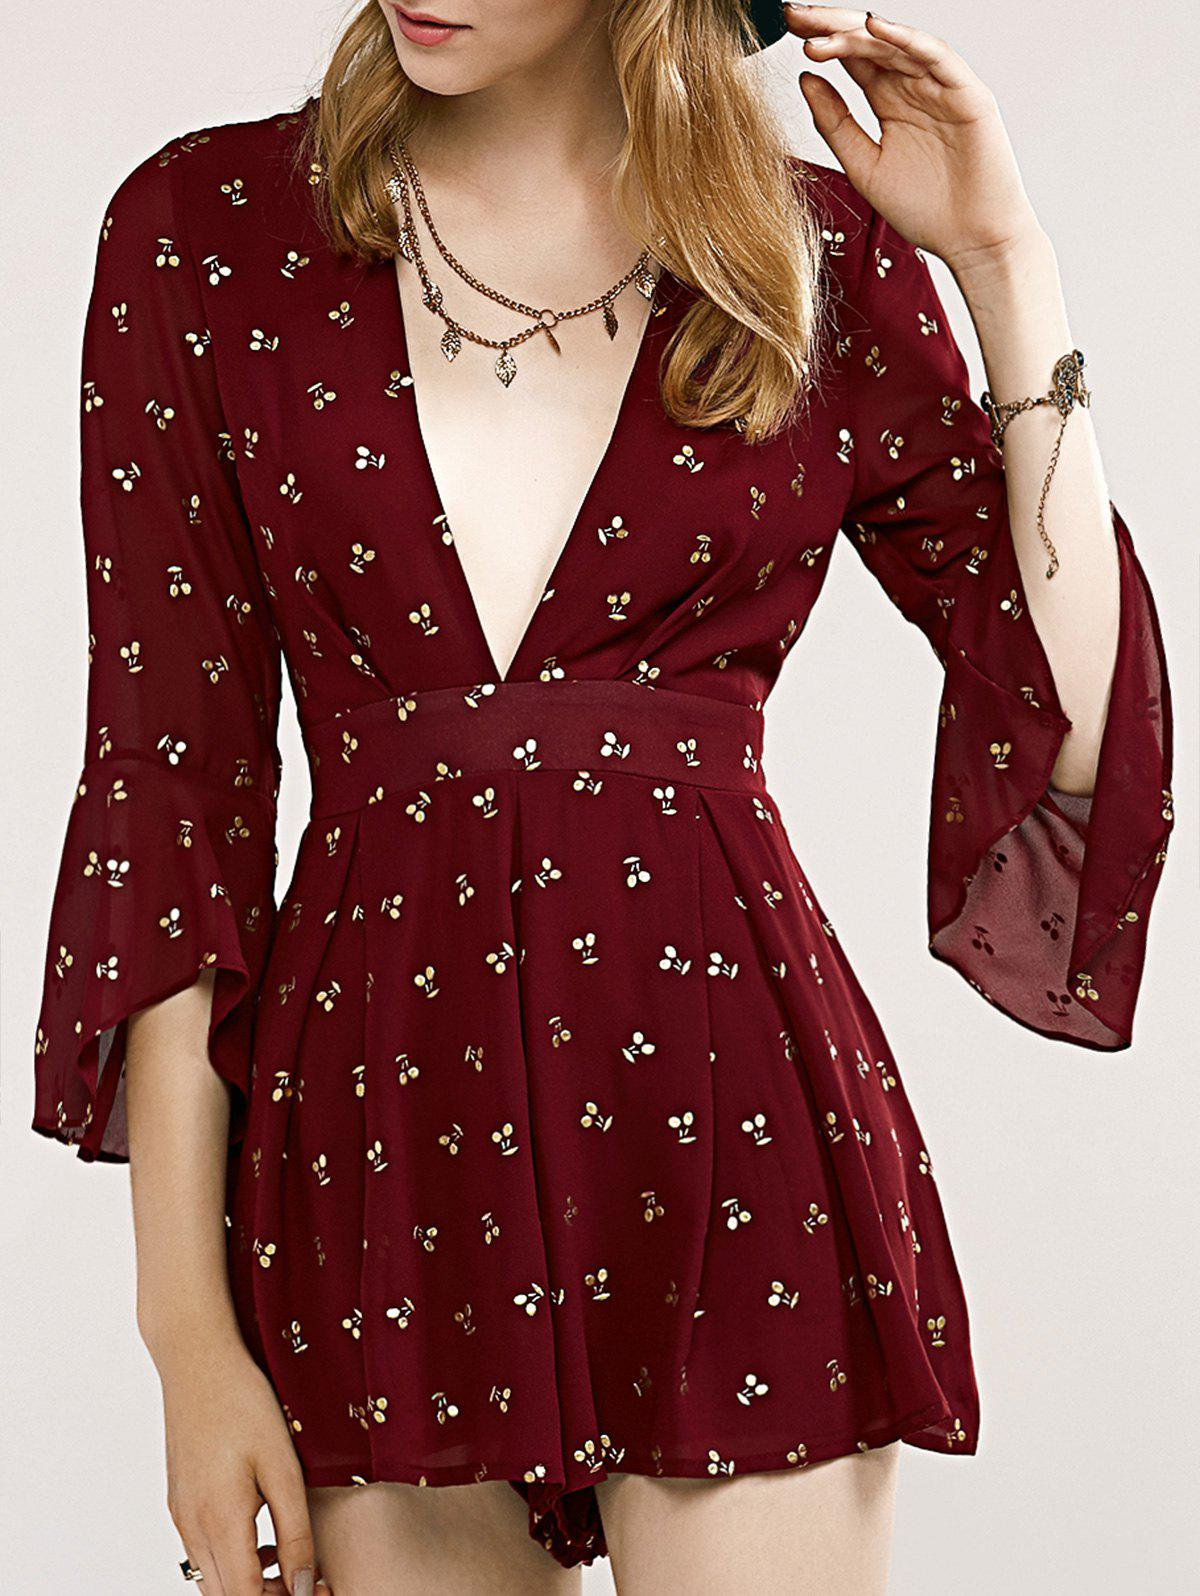 Discount Stylish Women's Plunging Neck Printed Flare Sleeve Romper